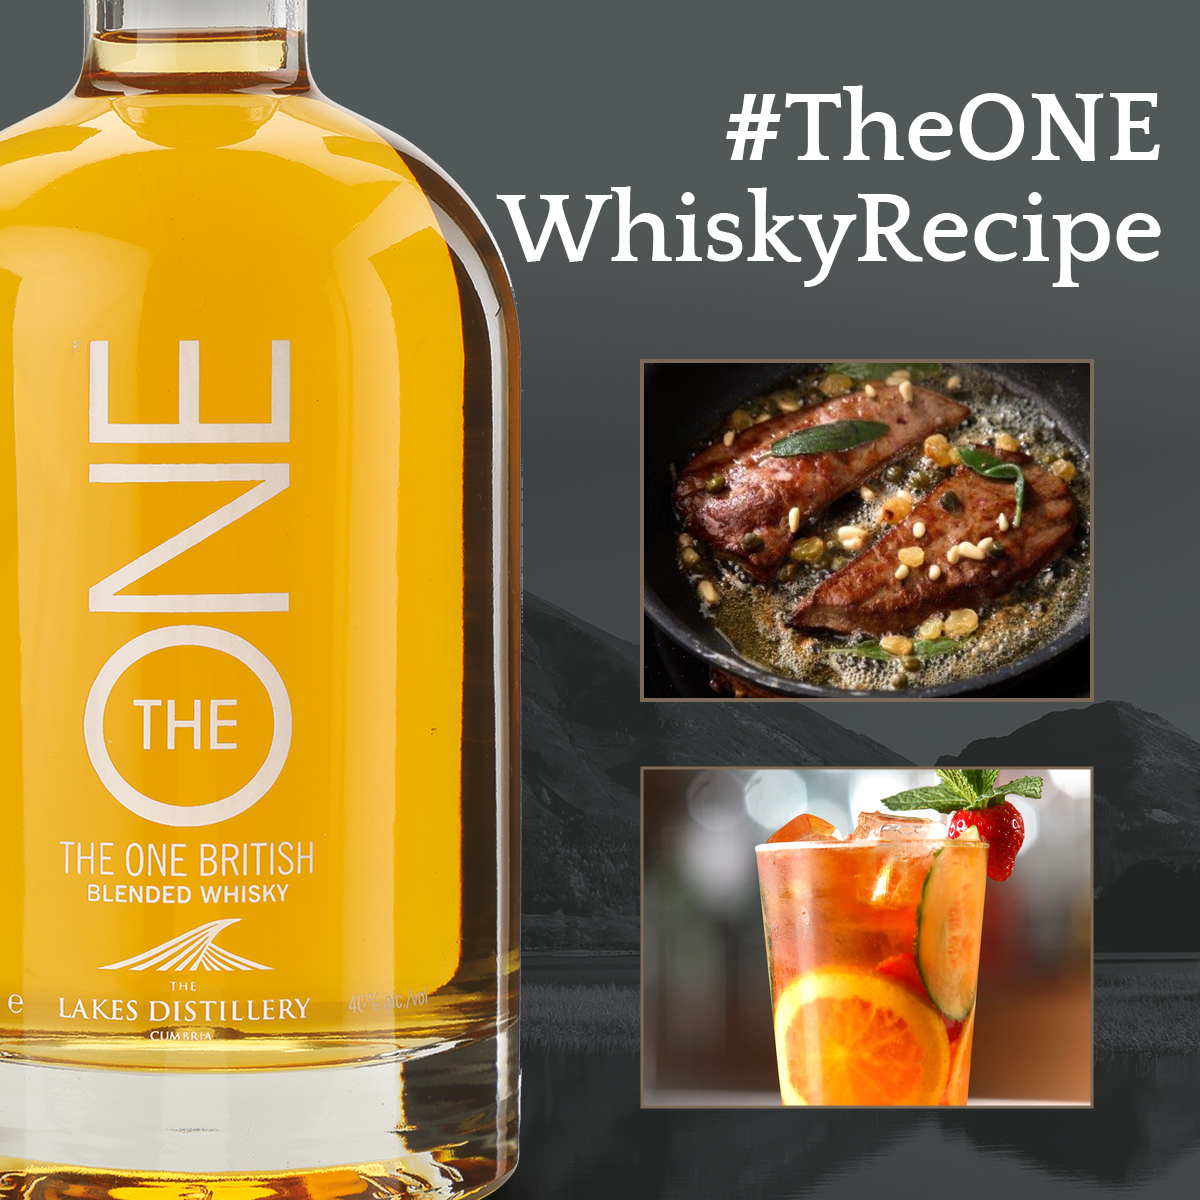 whisky recipe digital